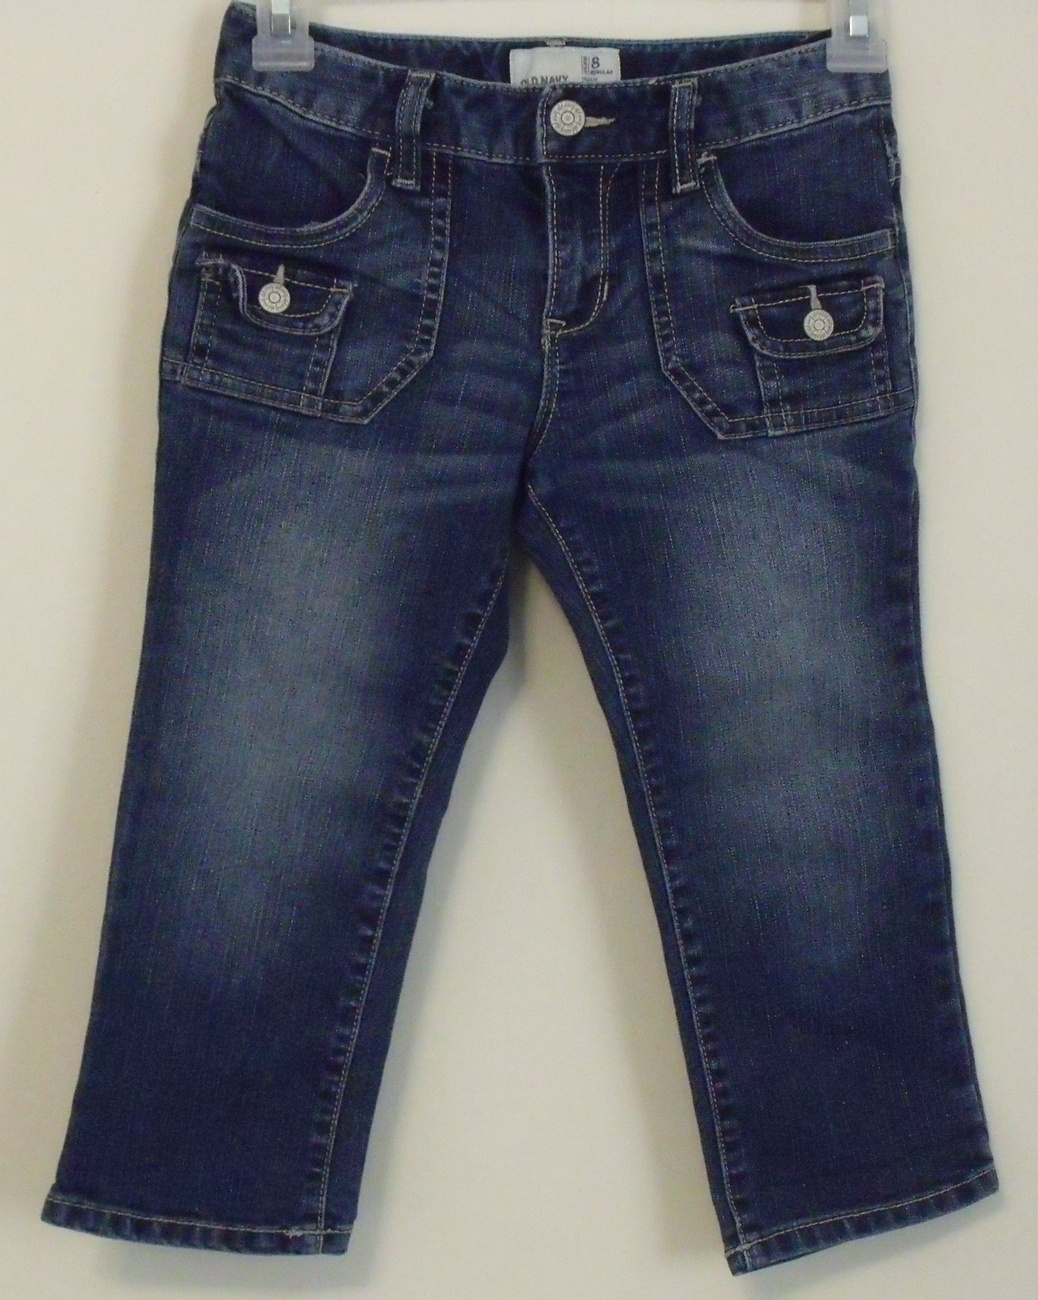 Girls old navy denim capri pants size 8